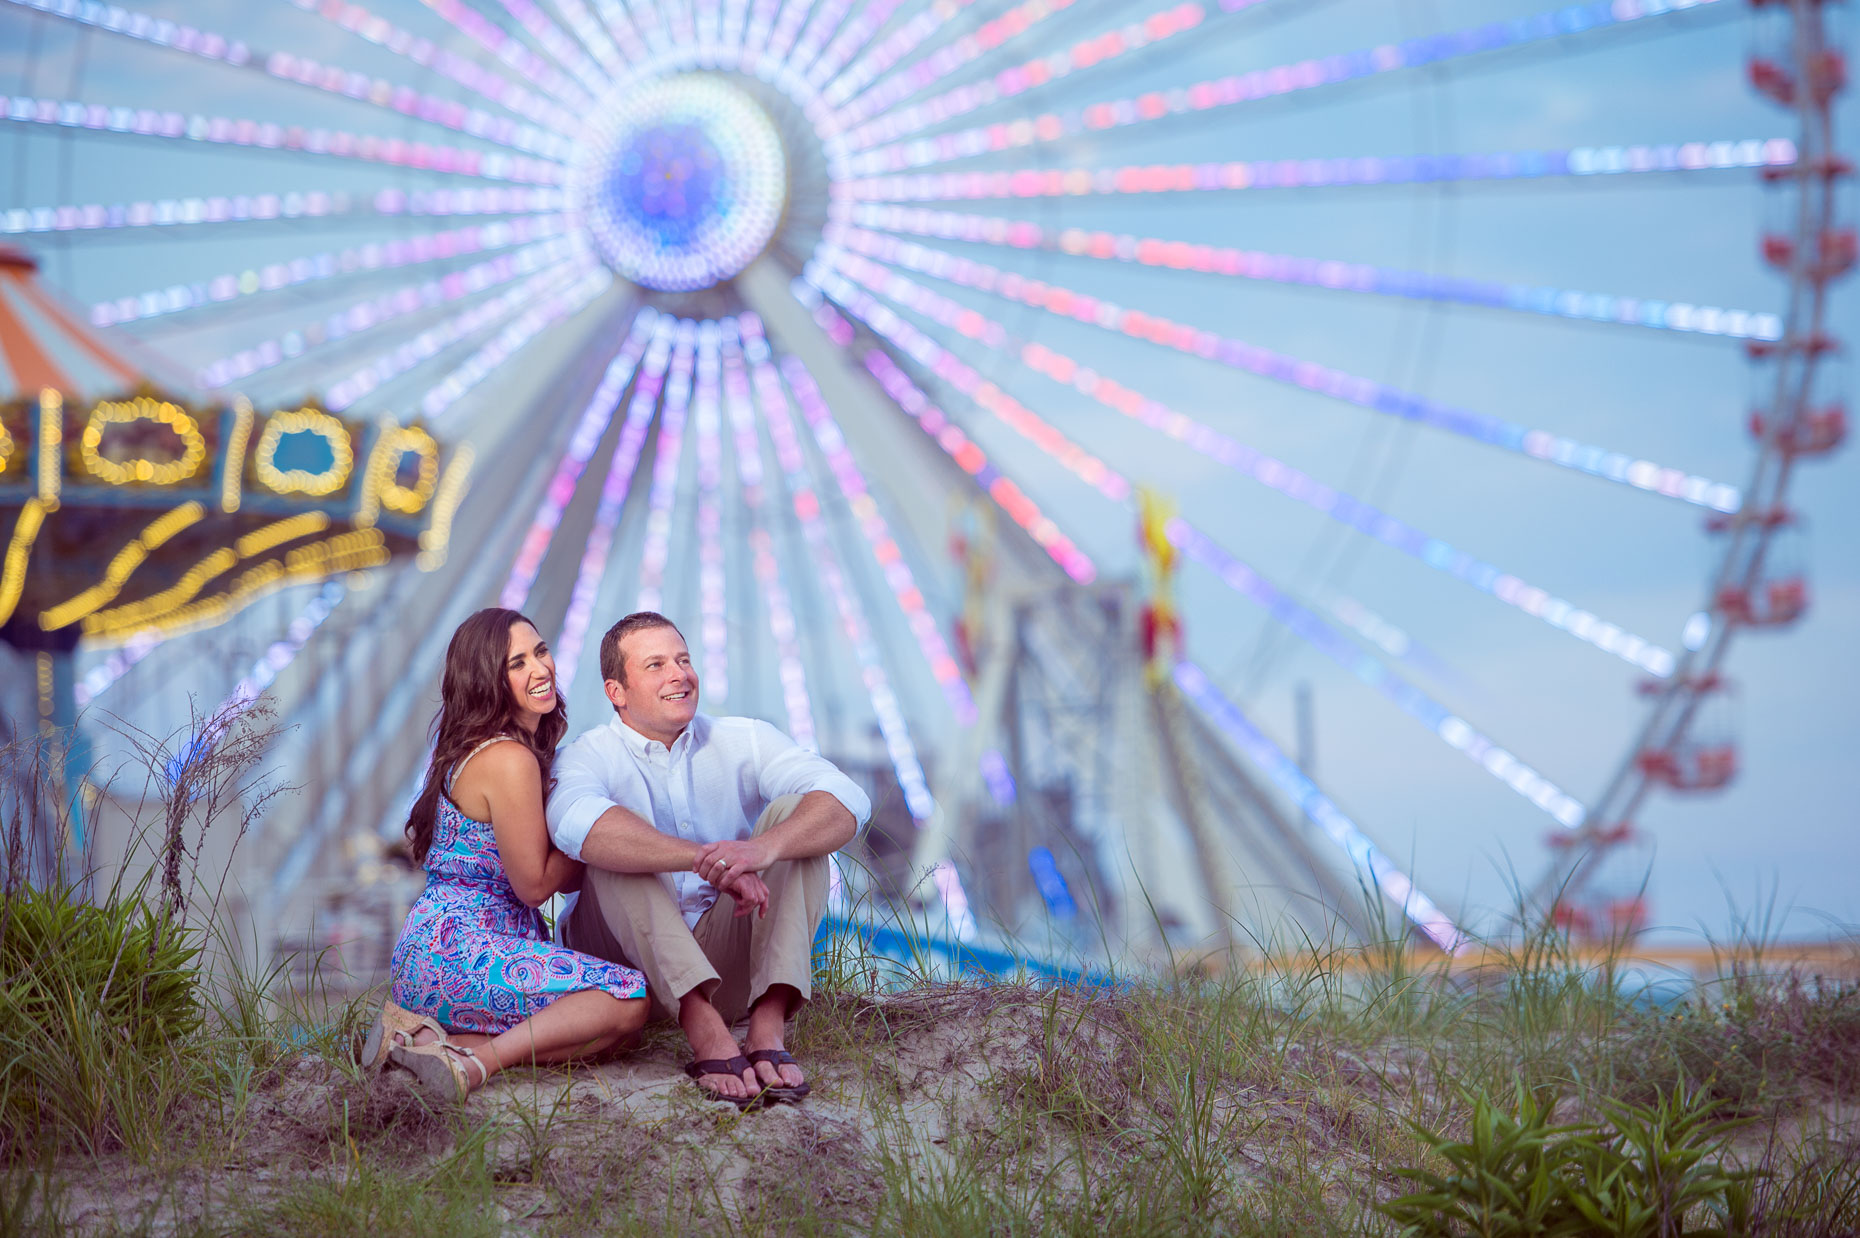 Ferris Wheel Couple | Editorial Photographer Dave Moser